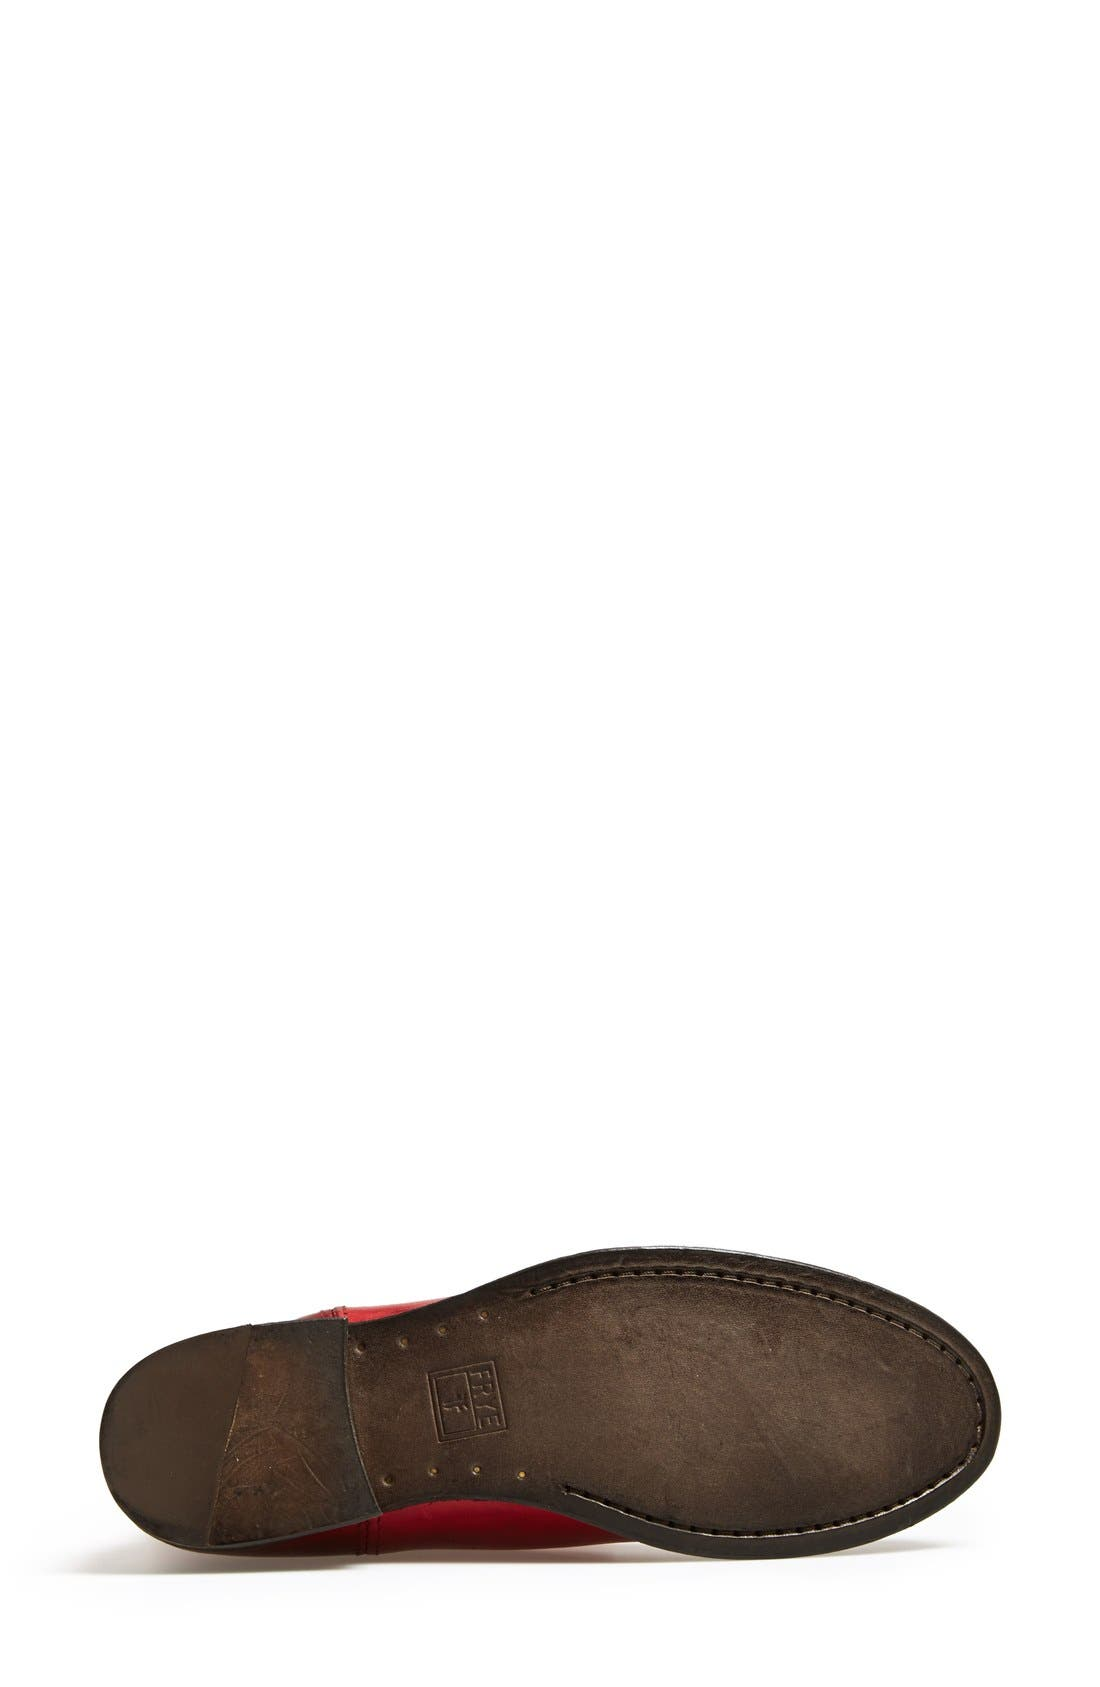 'Melissa Button' Leather Riding Boot,                             Alternate thumbnail 67, color,